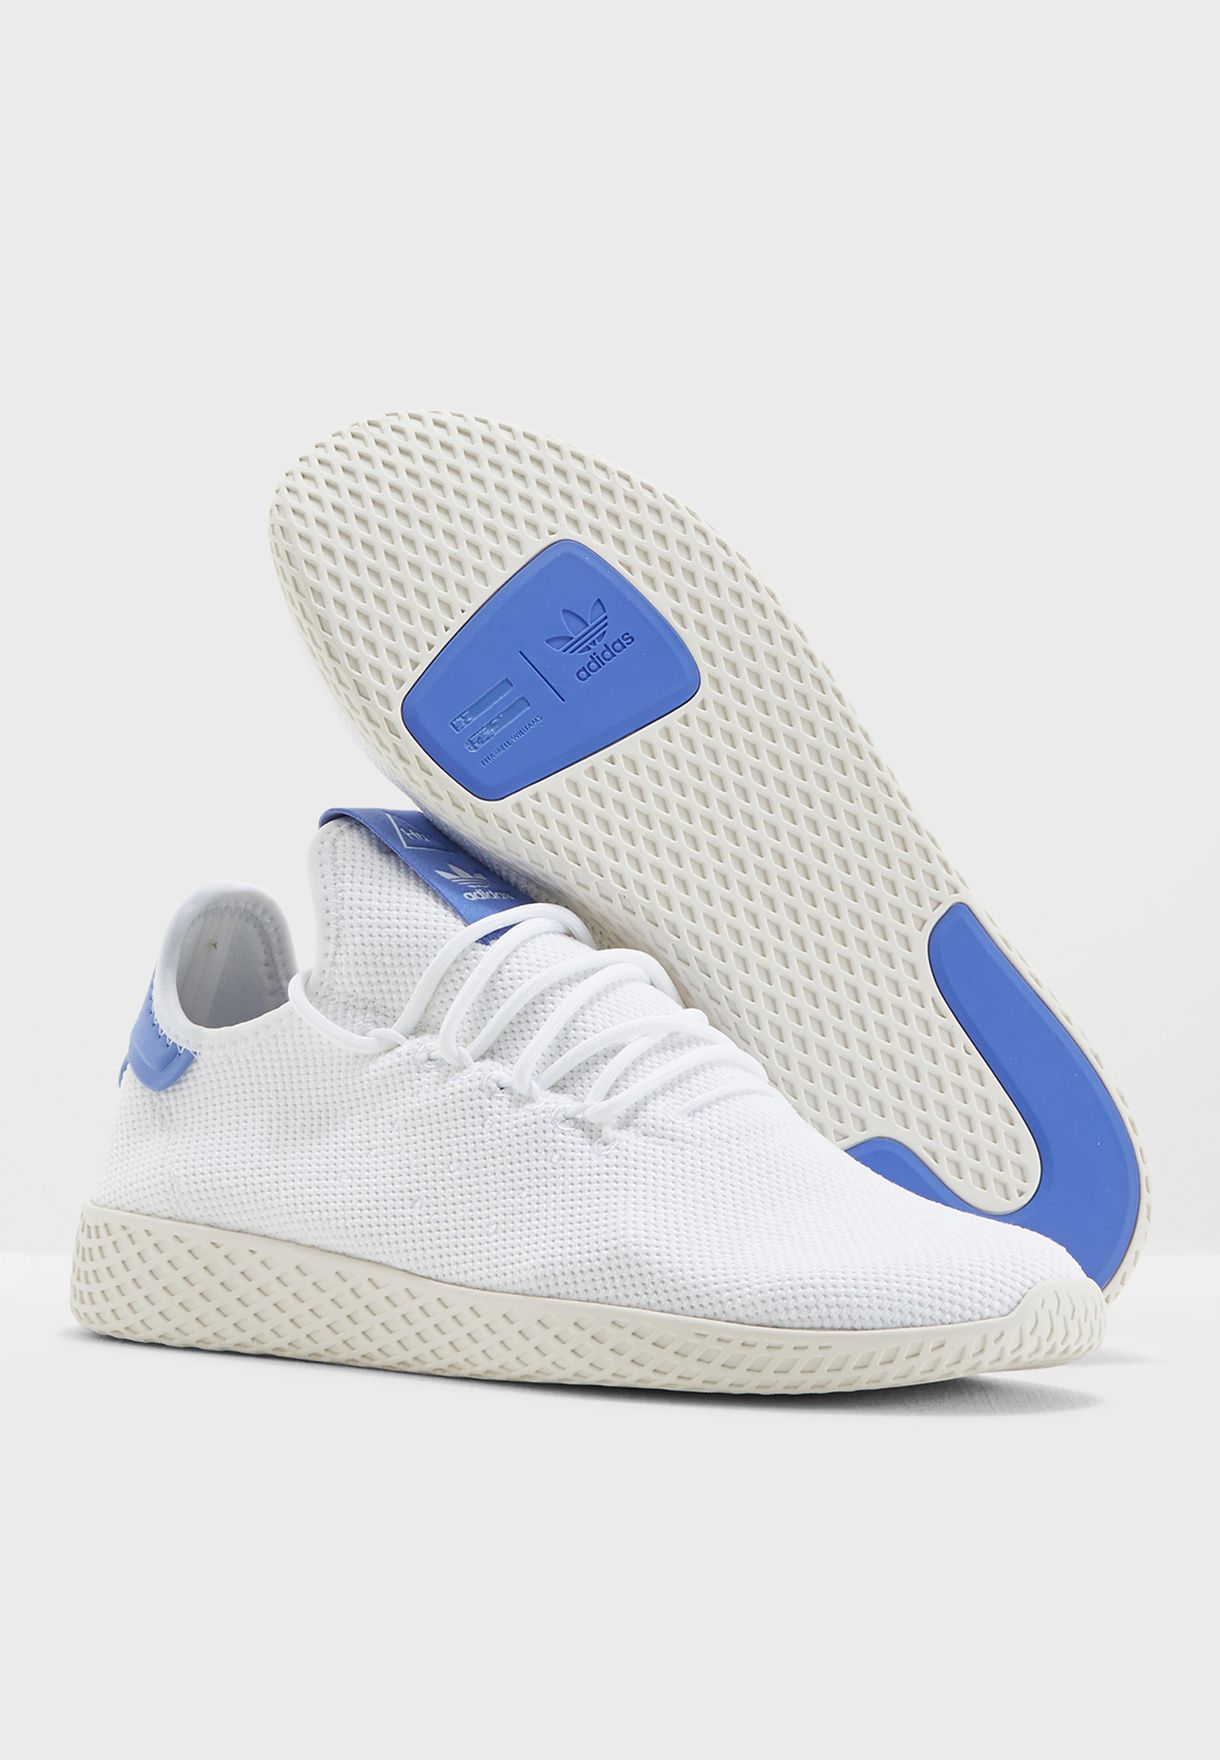 456e05ecc392c Shop adidas Originals white Pharrell Williams Tennis Hu B41794 for ...